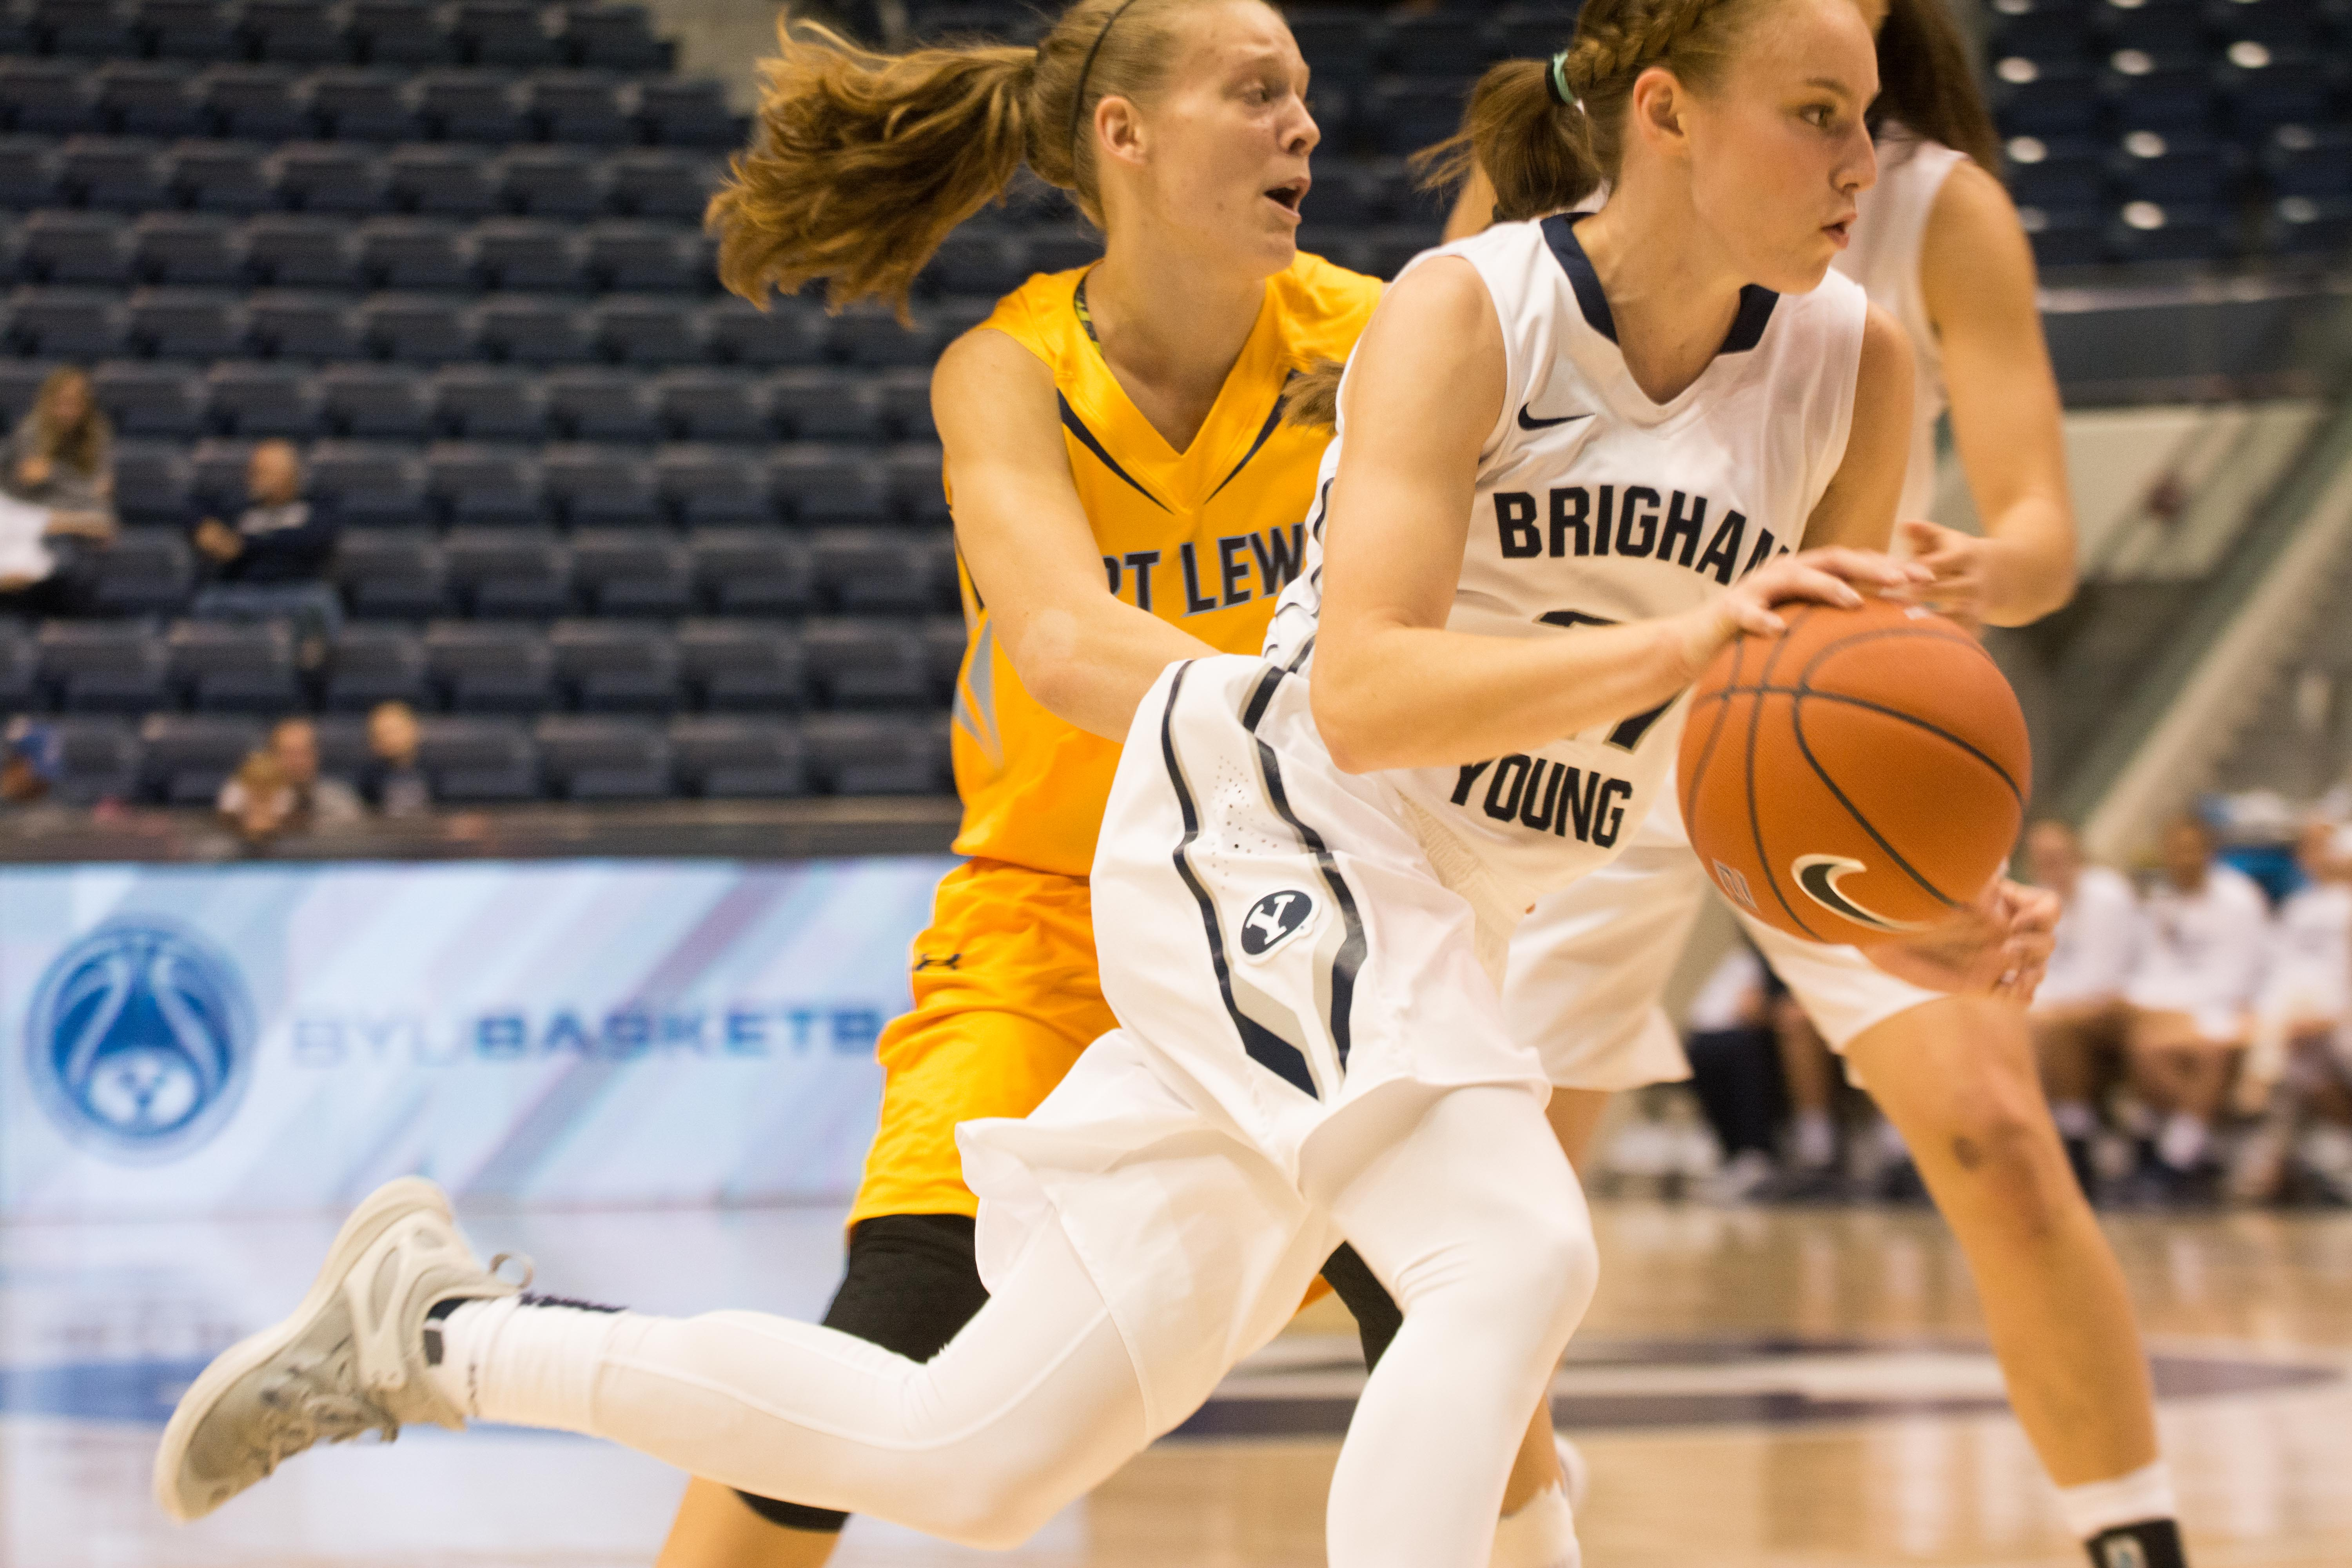 Lexi Eaton Rydalch breaks past her defender in the game against Fort Lewis. Rydalch leads the Cougars scoring an average of 22 points per game and scored 25 points to beat BYU-H. (Natalie Bothwell)